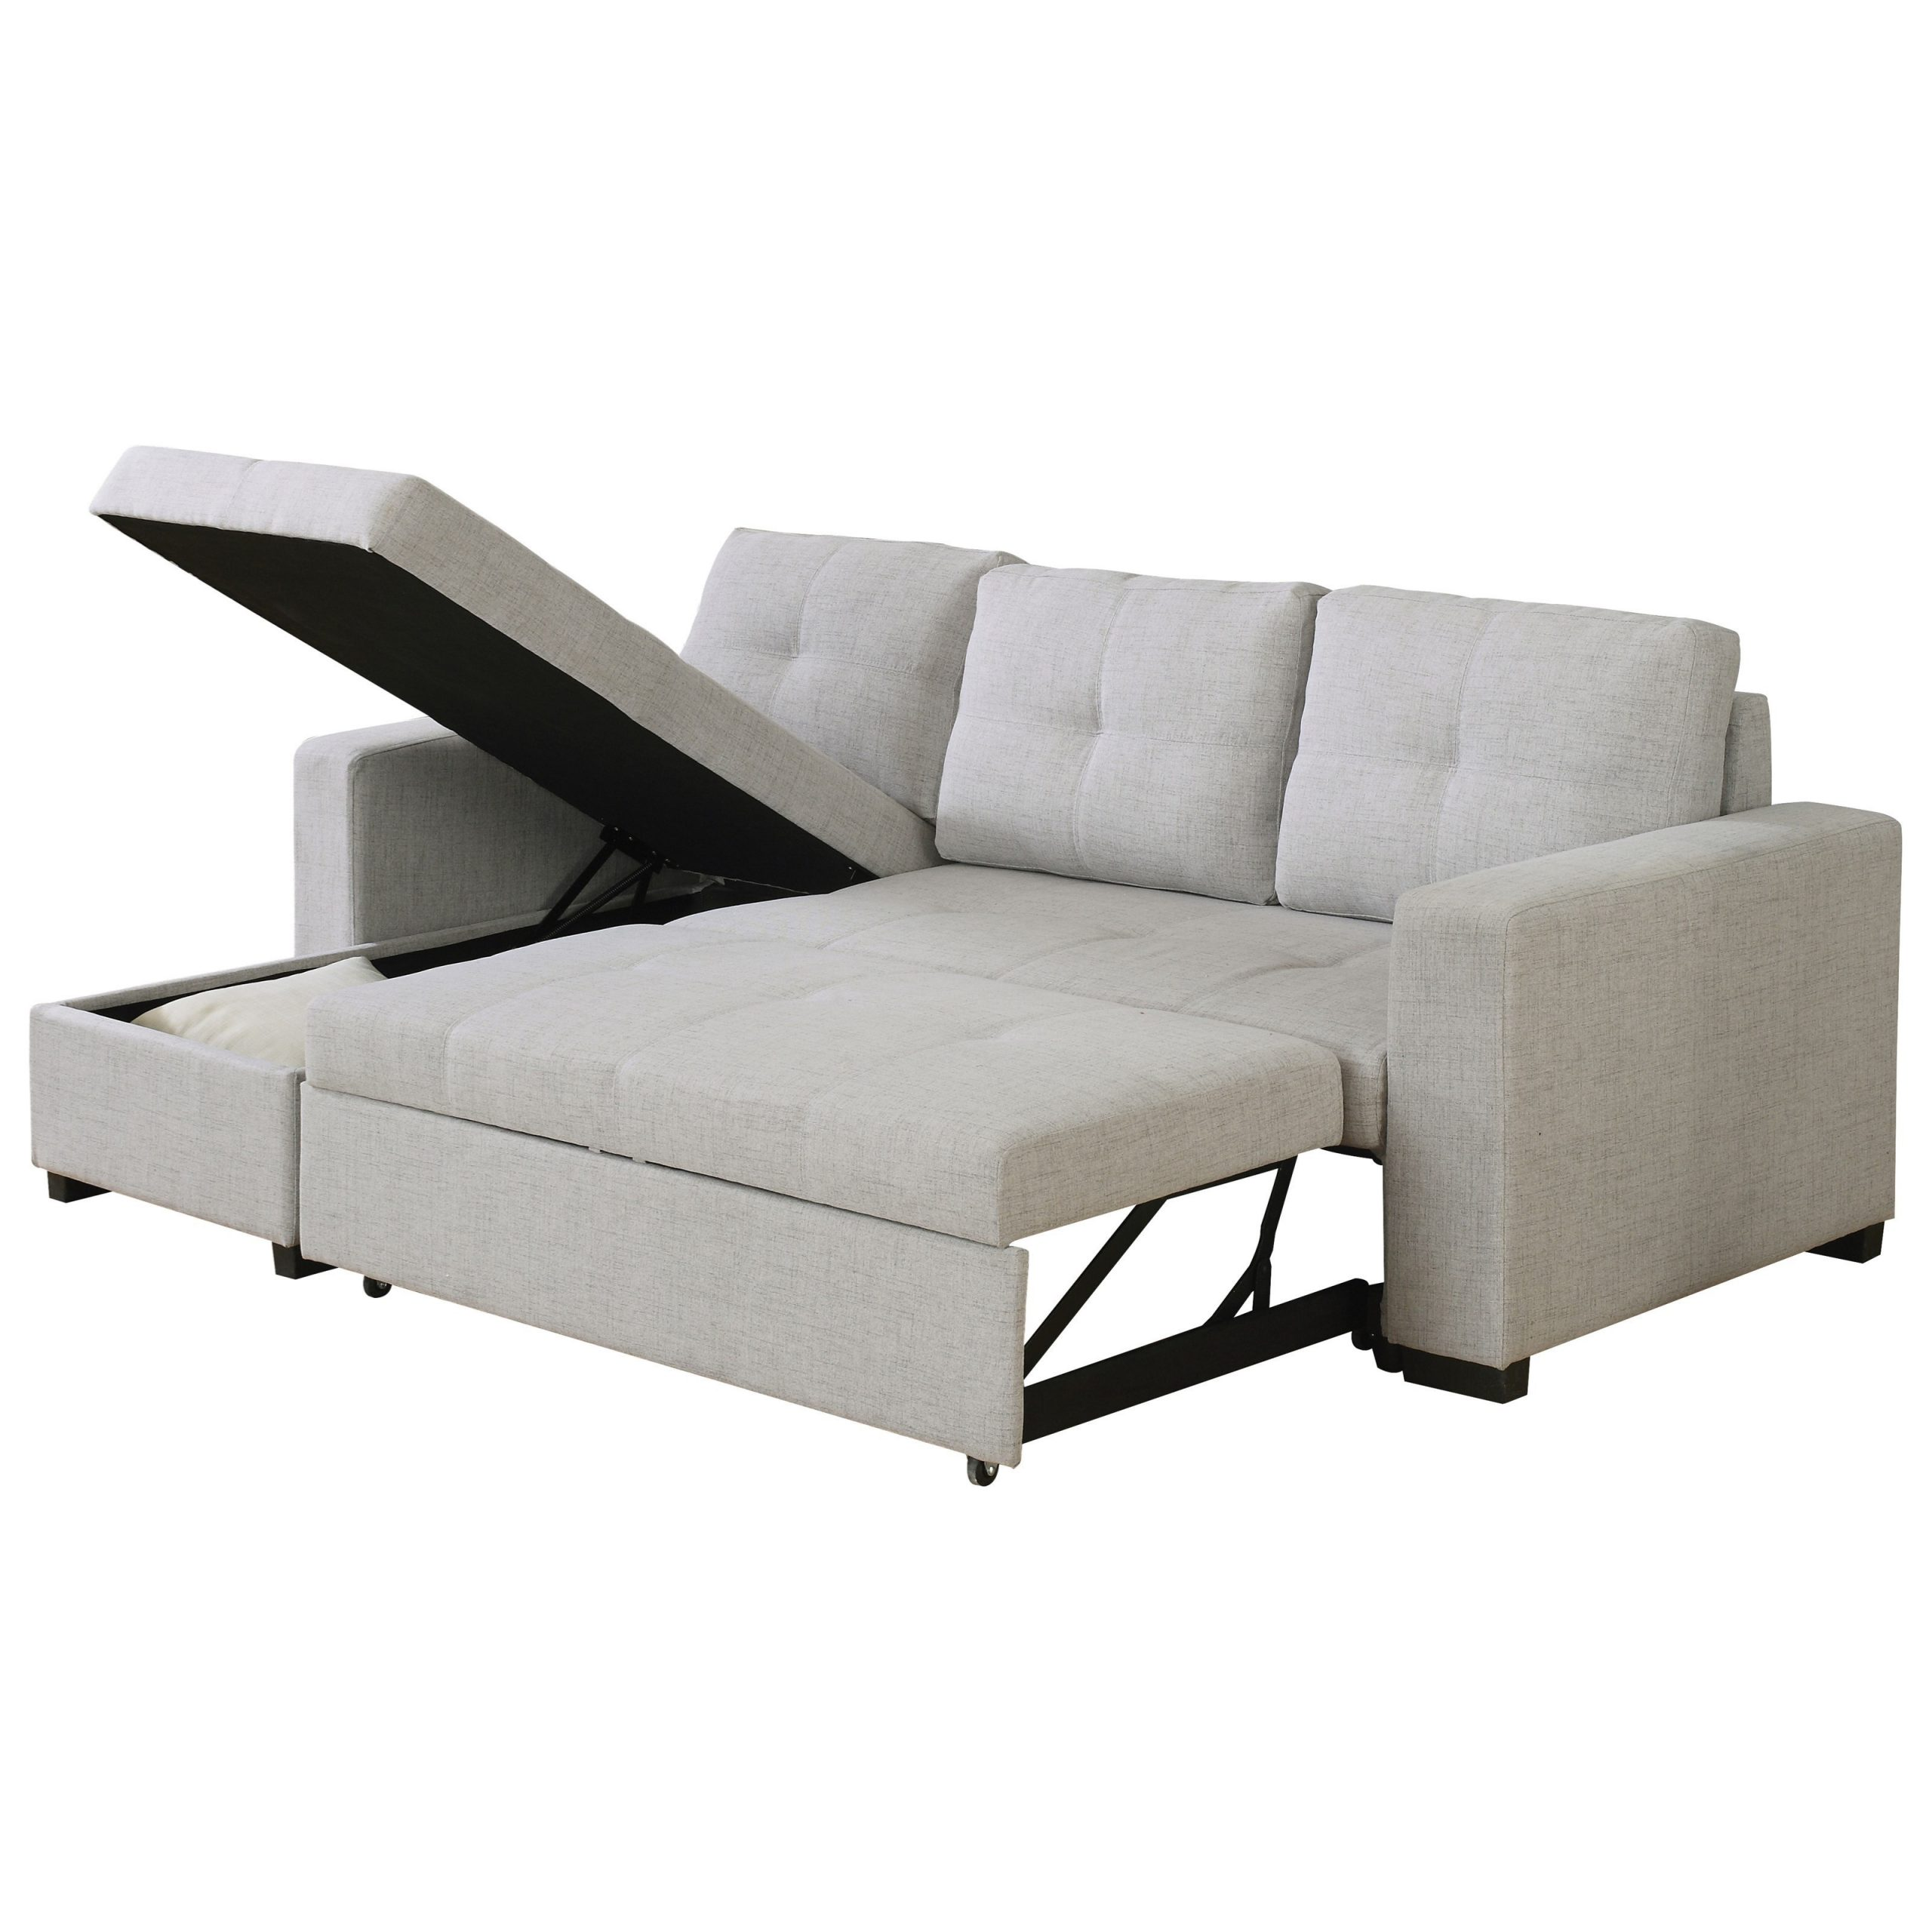 Latest Everly Beige Reversible Sectional Sofa With Sleeper Intended For Palisades Reversible Small Space Sectional Sofas With Storage (View 23 of 25)